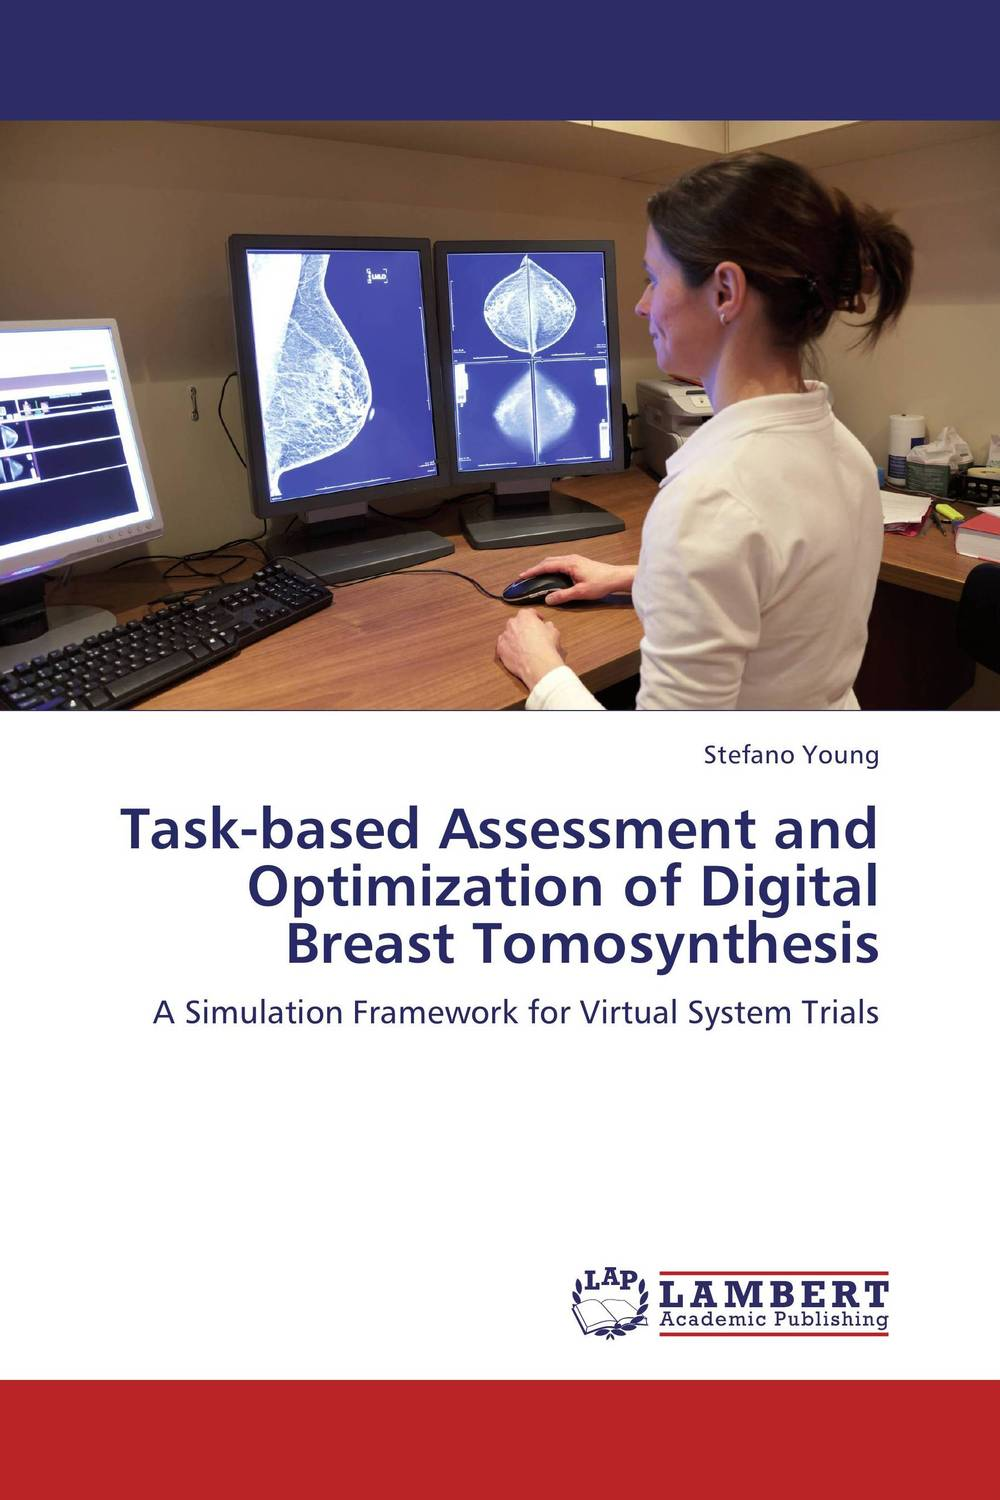 Task-based Assessment and Optimization of Digital Breast Tomosynthesis clustering and optimization based image segmentation techniques